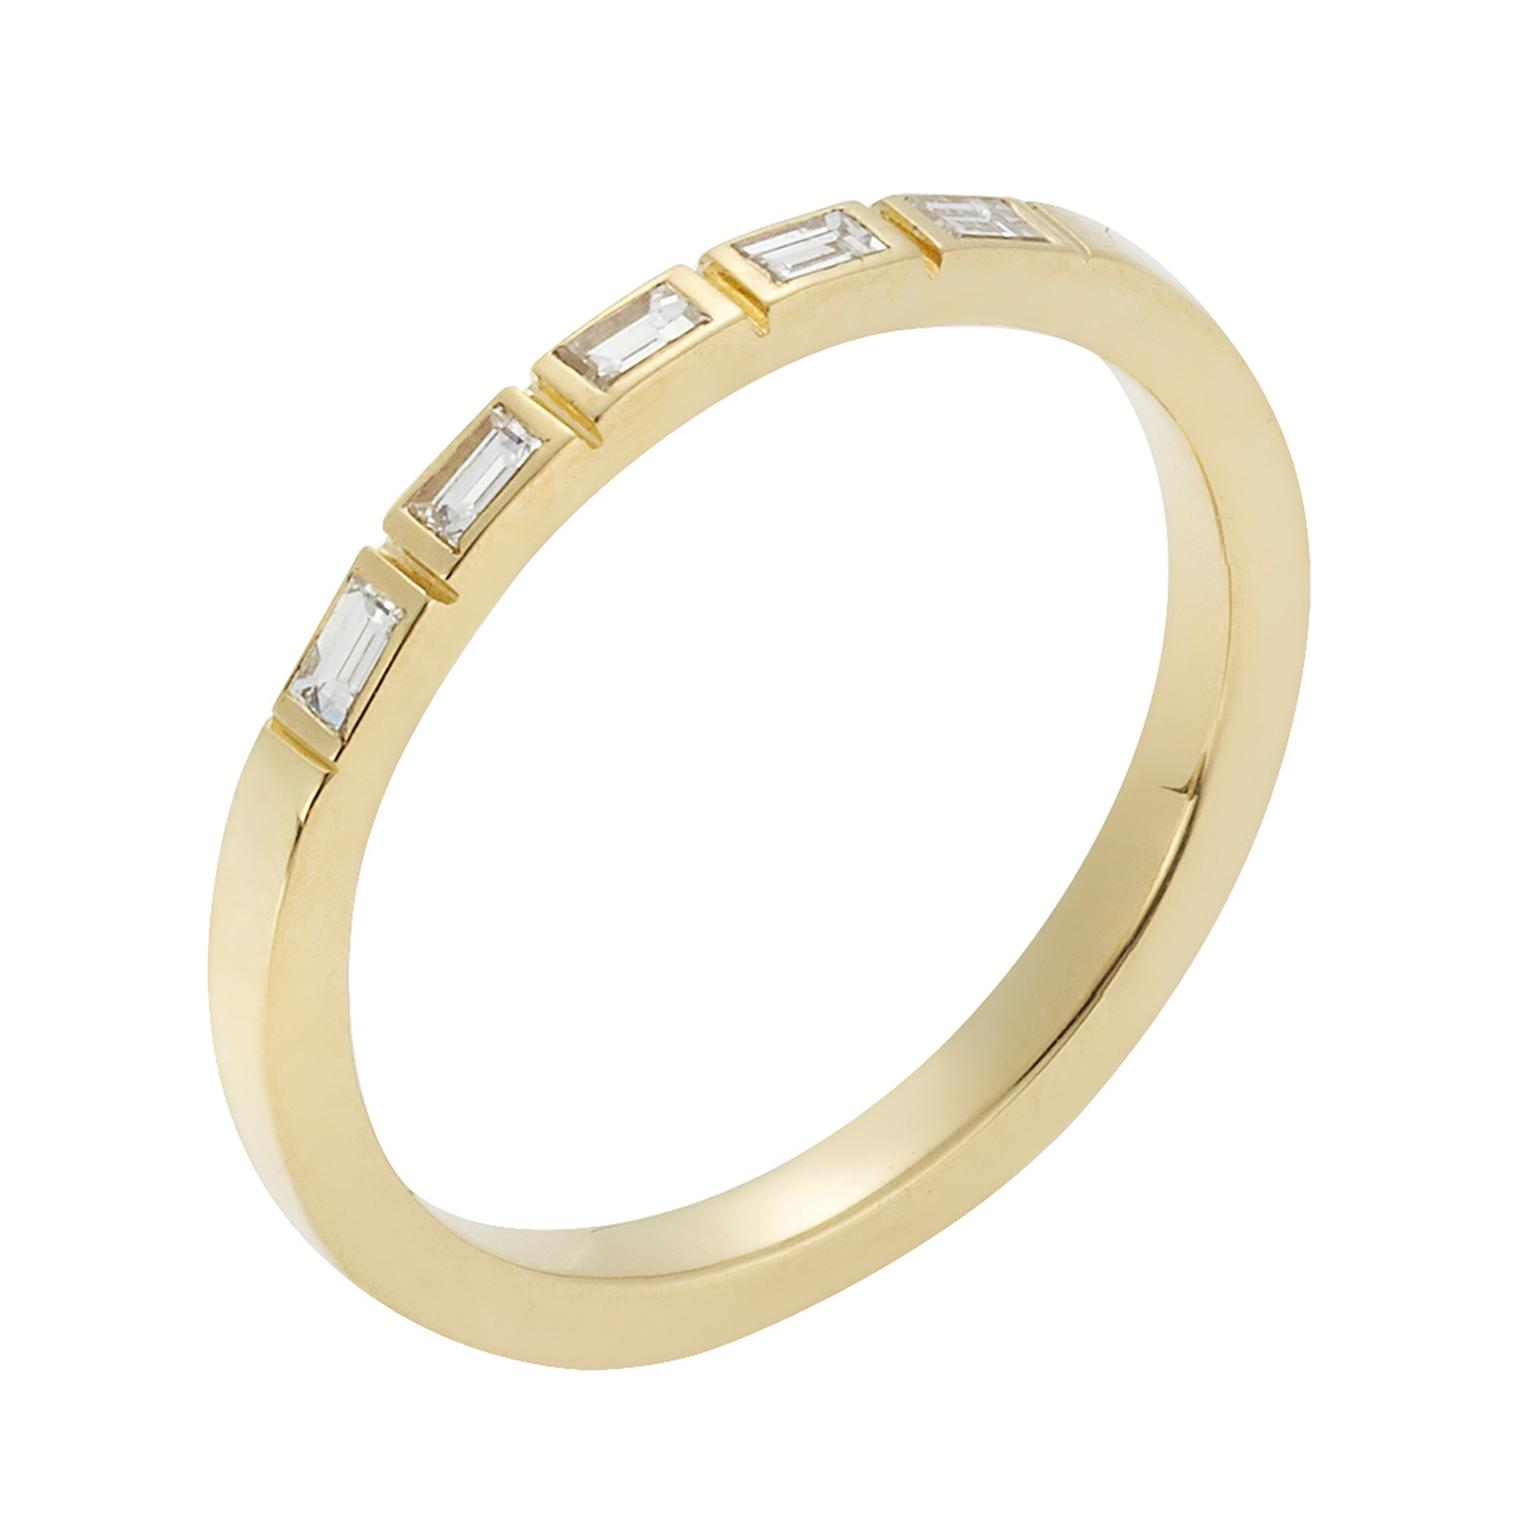 Ileana Makri yellow gold eternity ring with baguette diamonds